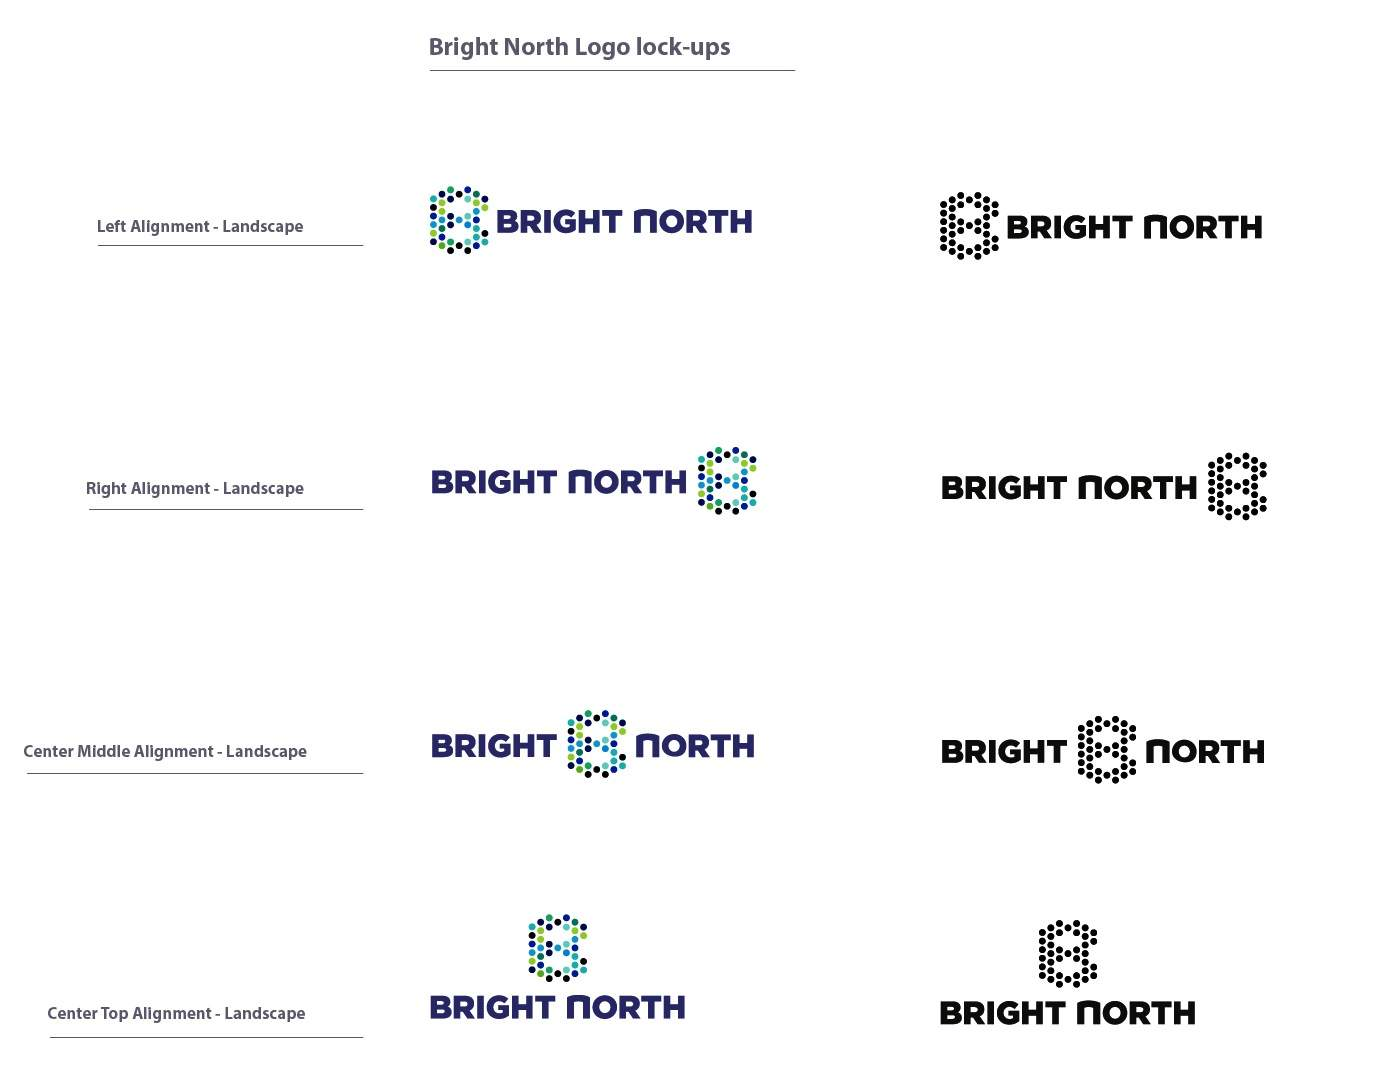 logo placement variations